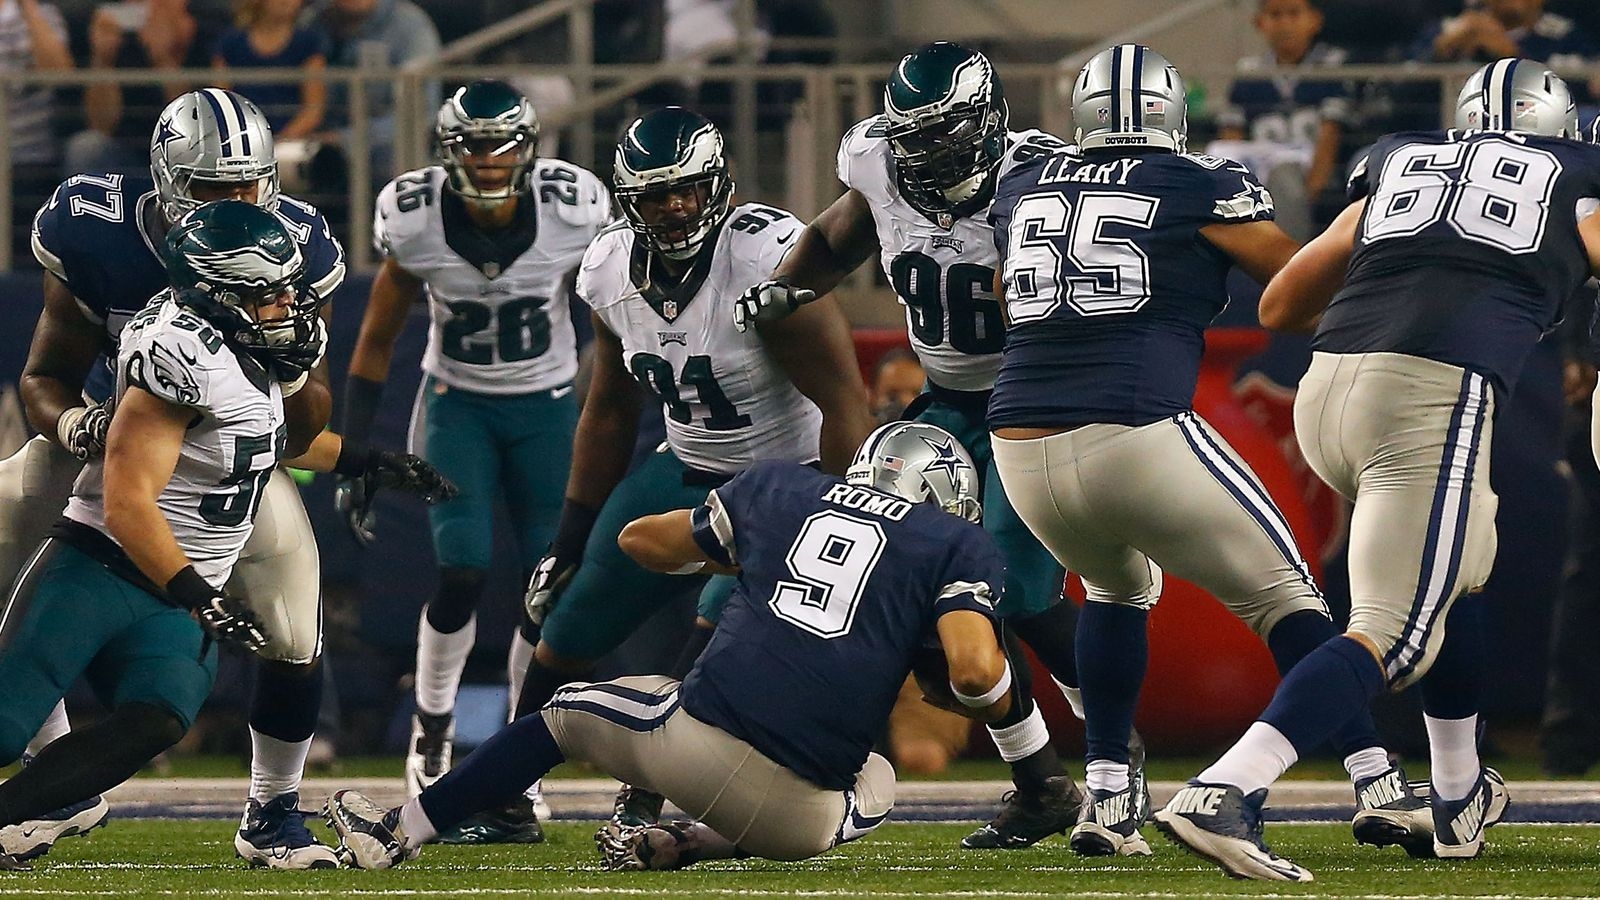 Sporting News provided live updates throughout the Eagles 379 win over the Cowboys on Sunday night